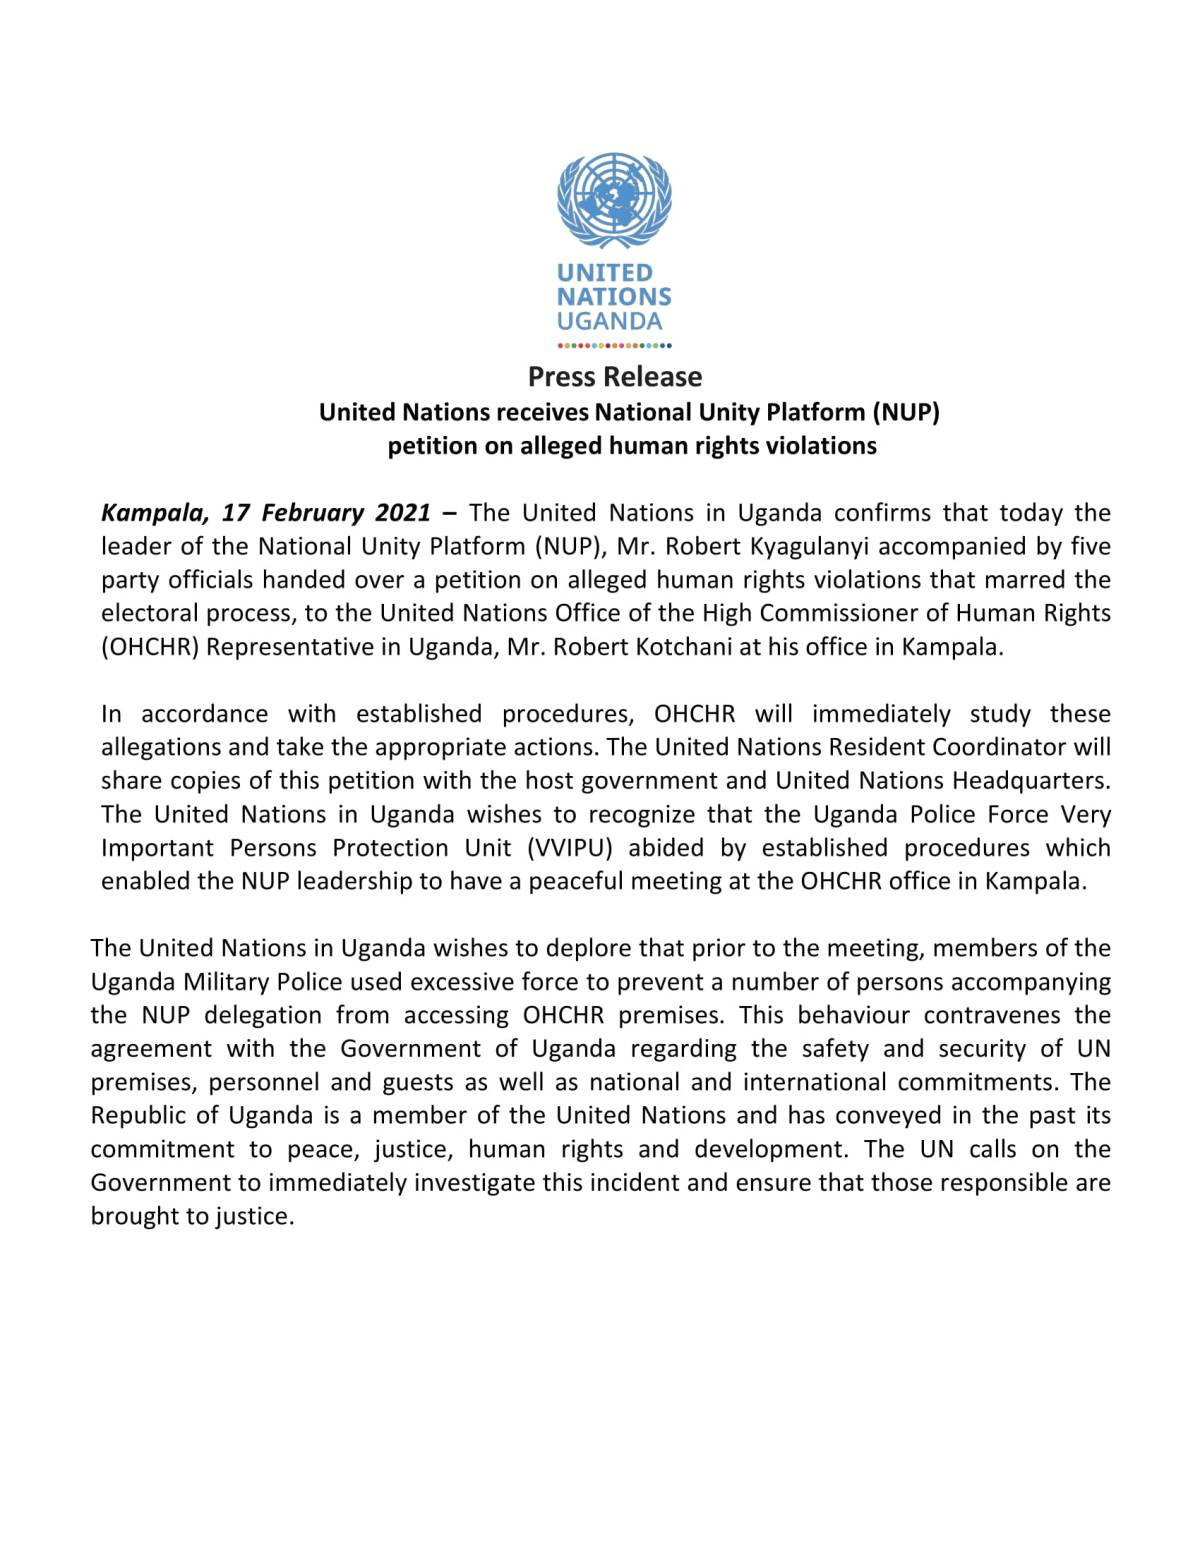 United Nations (UN) in Uganda: United Nations in Uganda received a petition from the National Unity Platform (NUP) on alleged human rights violations (17.02.2021)